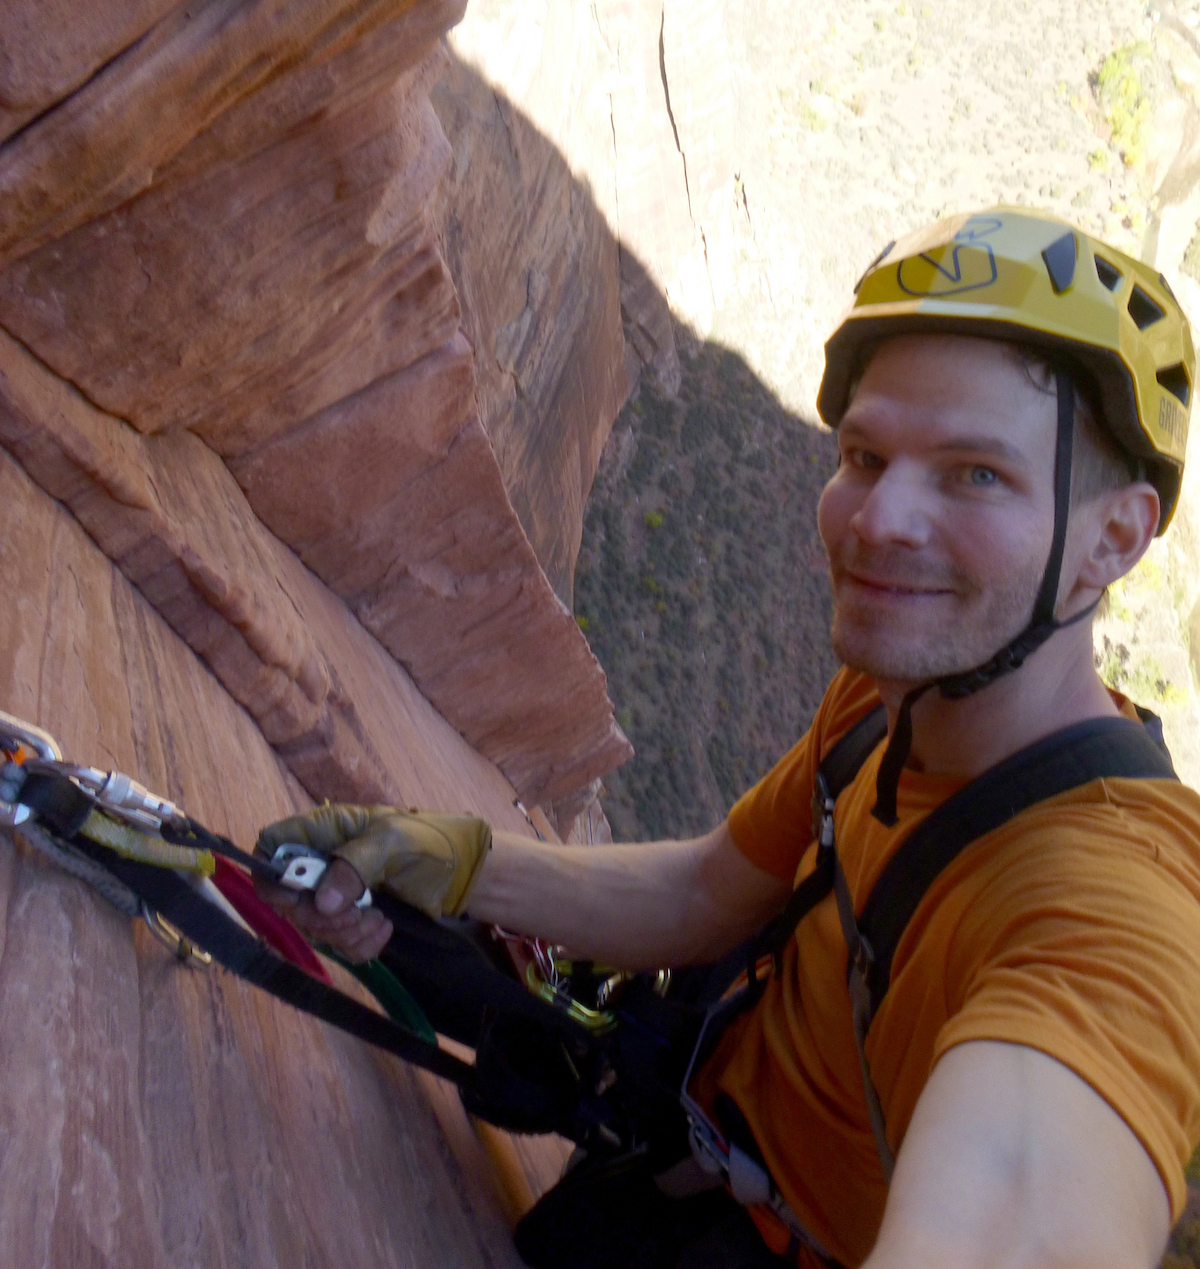 The author wearing the Grivel Stealth Hardshell helmet on the second-to-last pitch of Prodigal Sun in Zion, October 2017. [Photo] Derek Franz